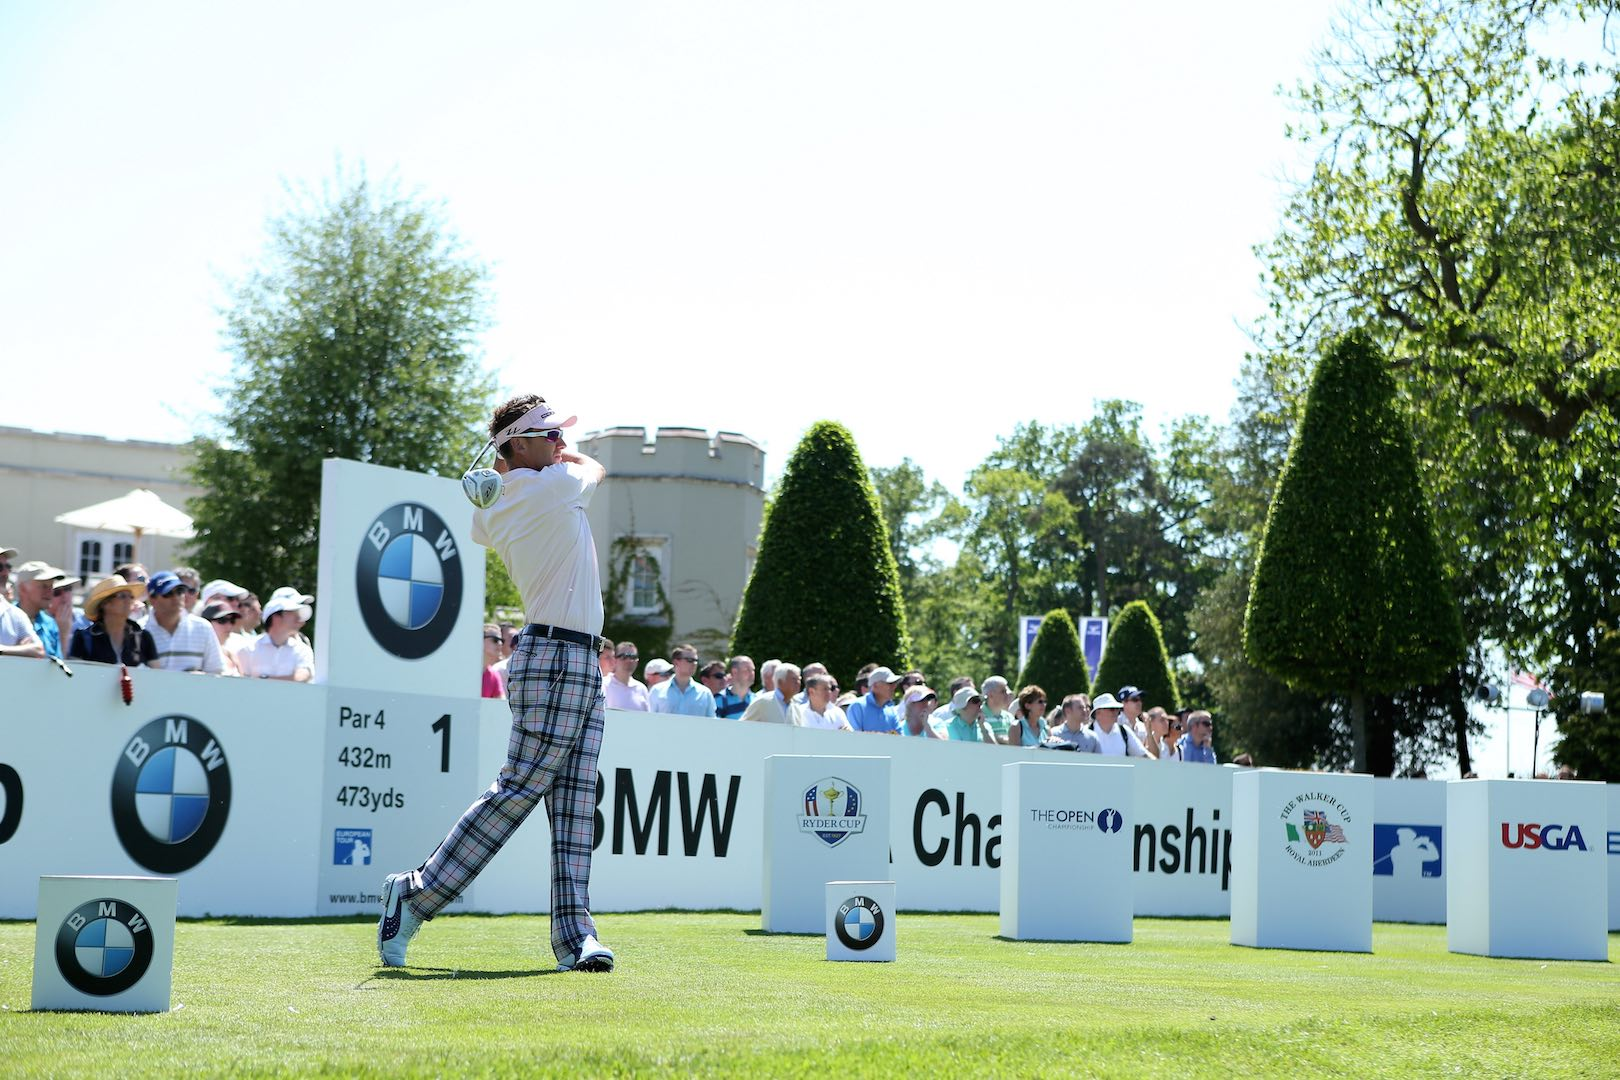 Ian Poulter joins star-studded BMW at Wentworth